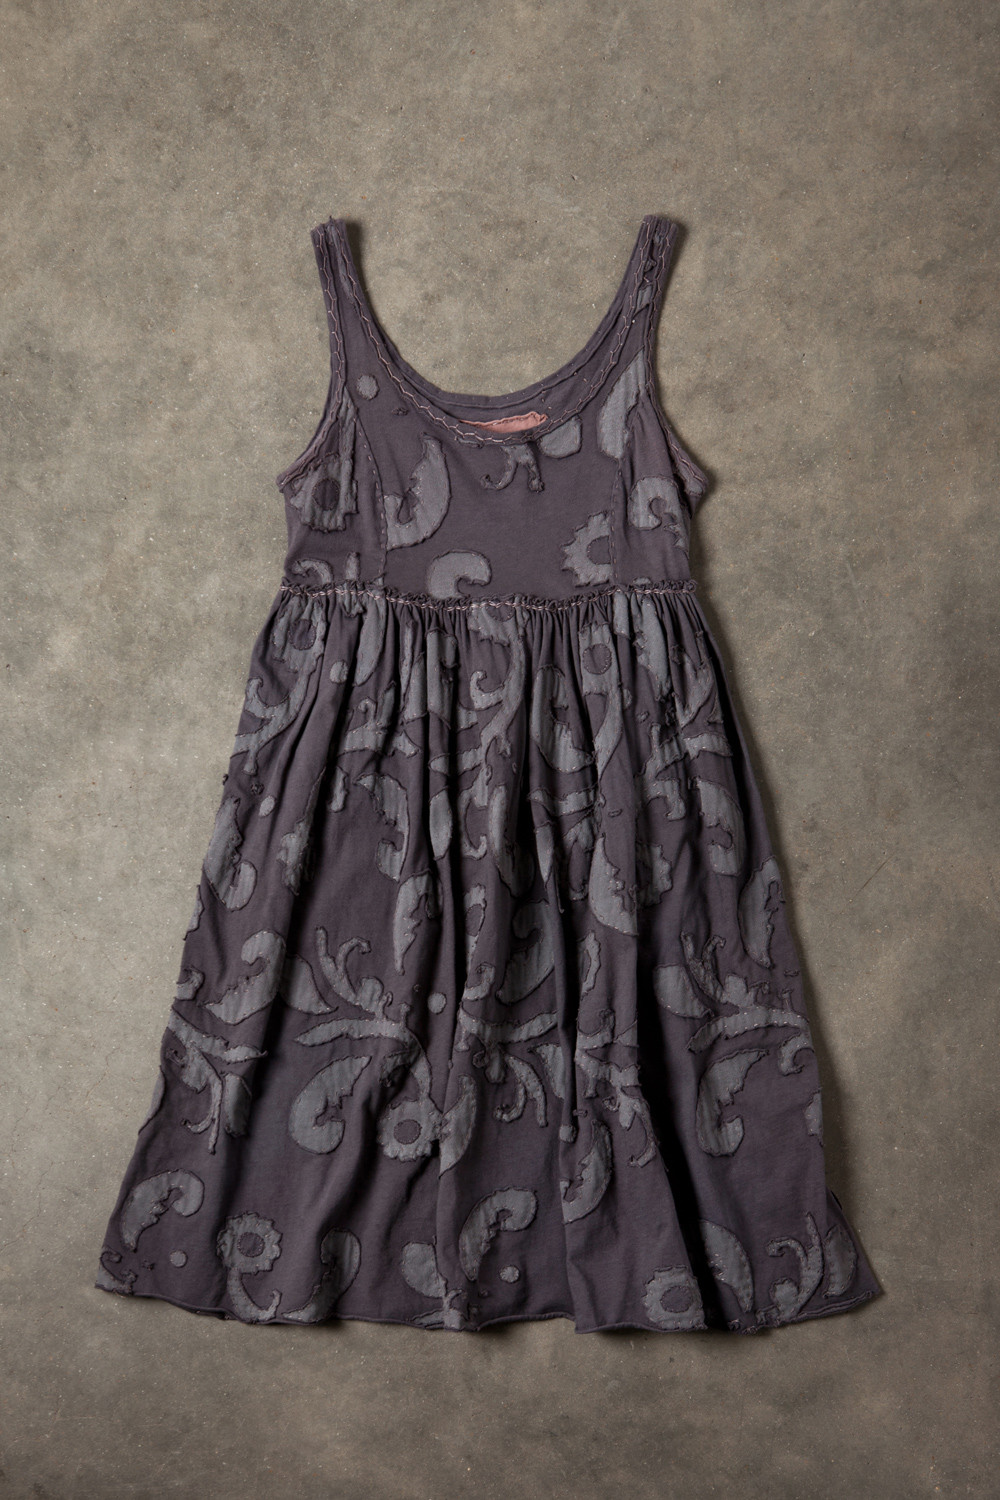 Best ideas about DIY Toddler Dress . Save or Pin DIY BABY DOLL CAMISOLE DRESS AND FLIP FLOPS Alabama Now.